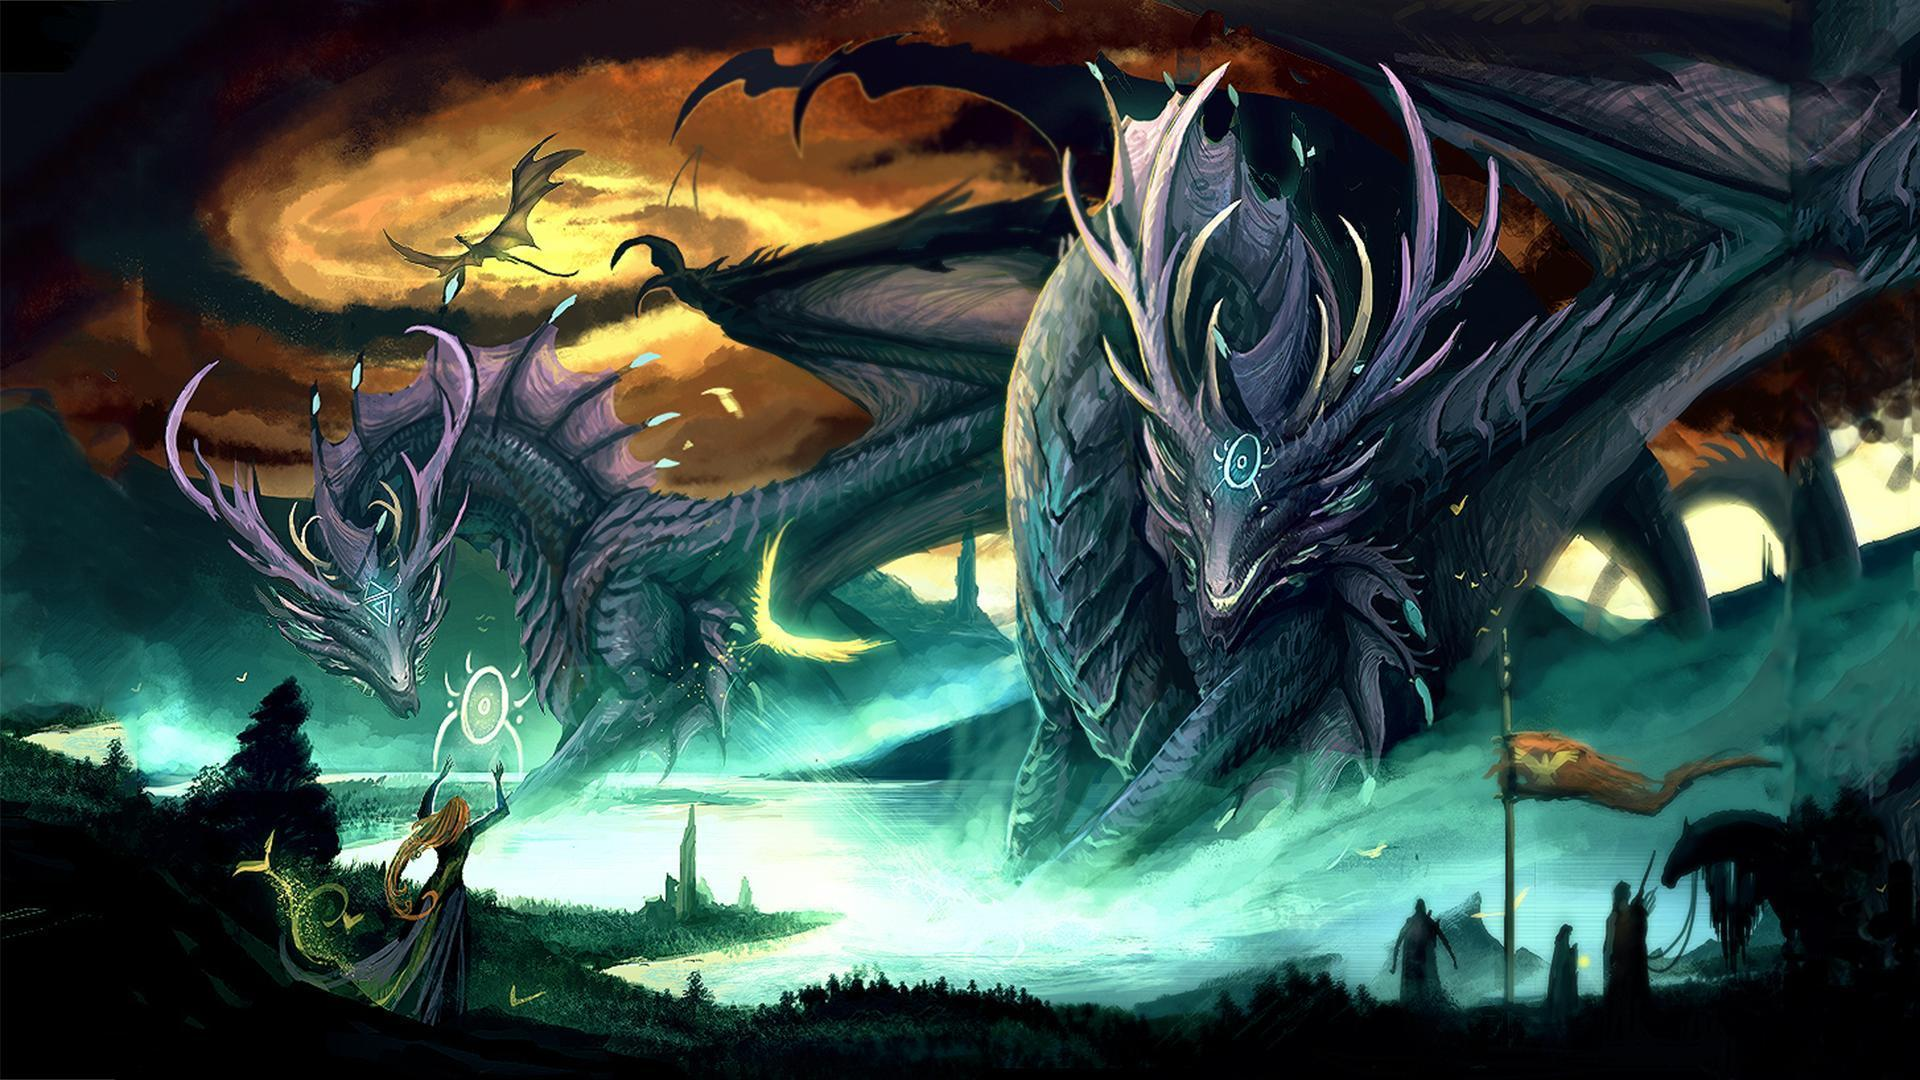 dragon wallpaper widescreen high resolution - photo #7